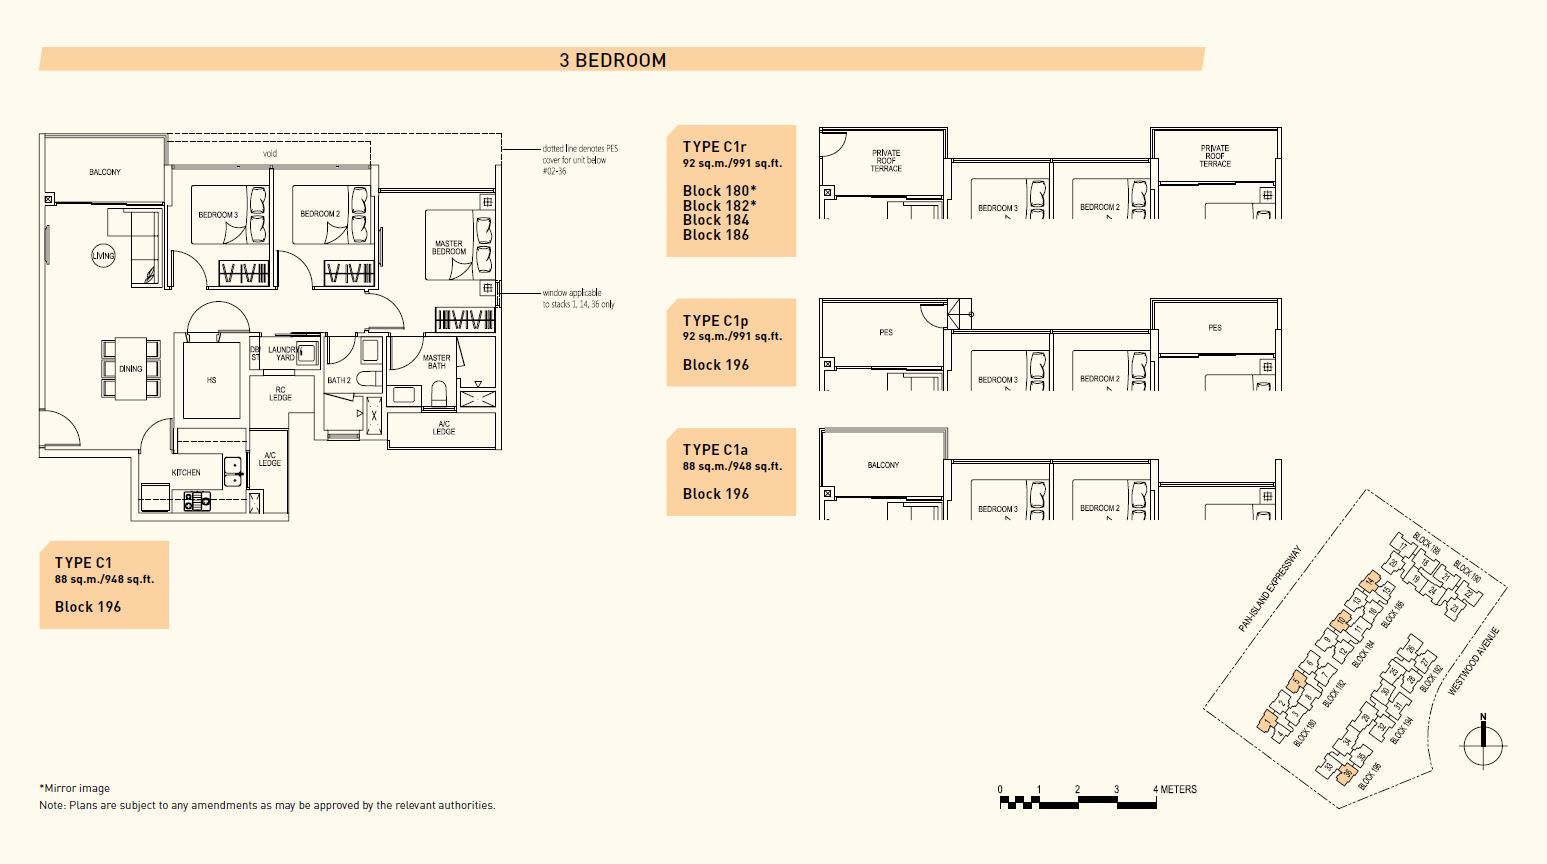 3BR C1 C1r C1p C1a_Westwood Residences_Terence Low_96411910